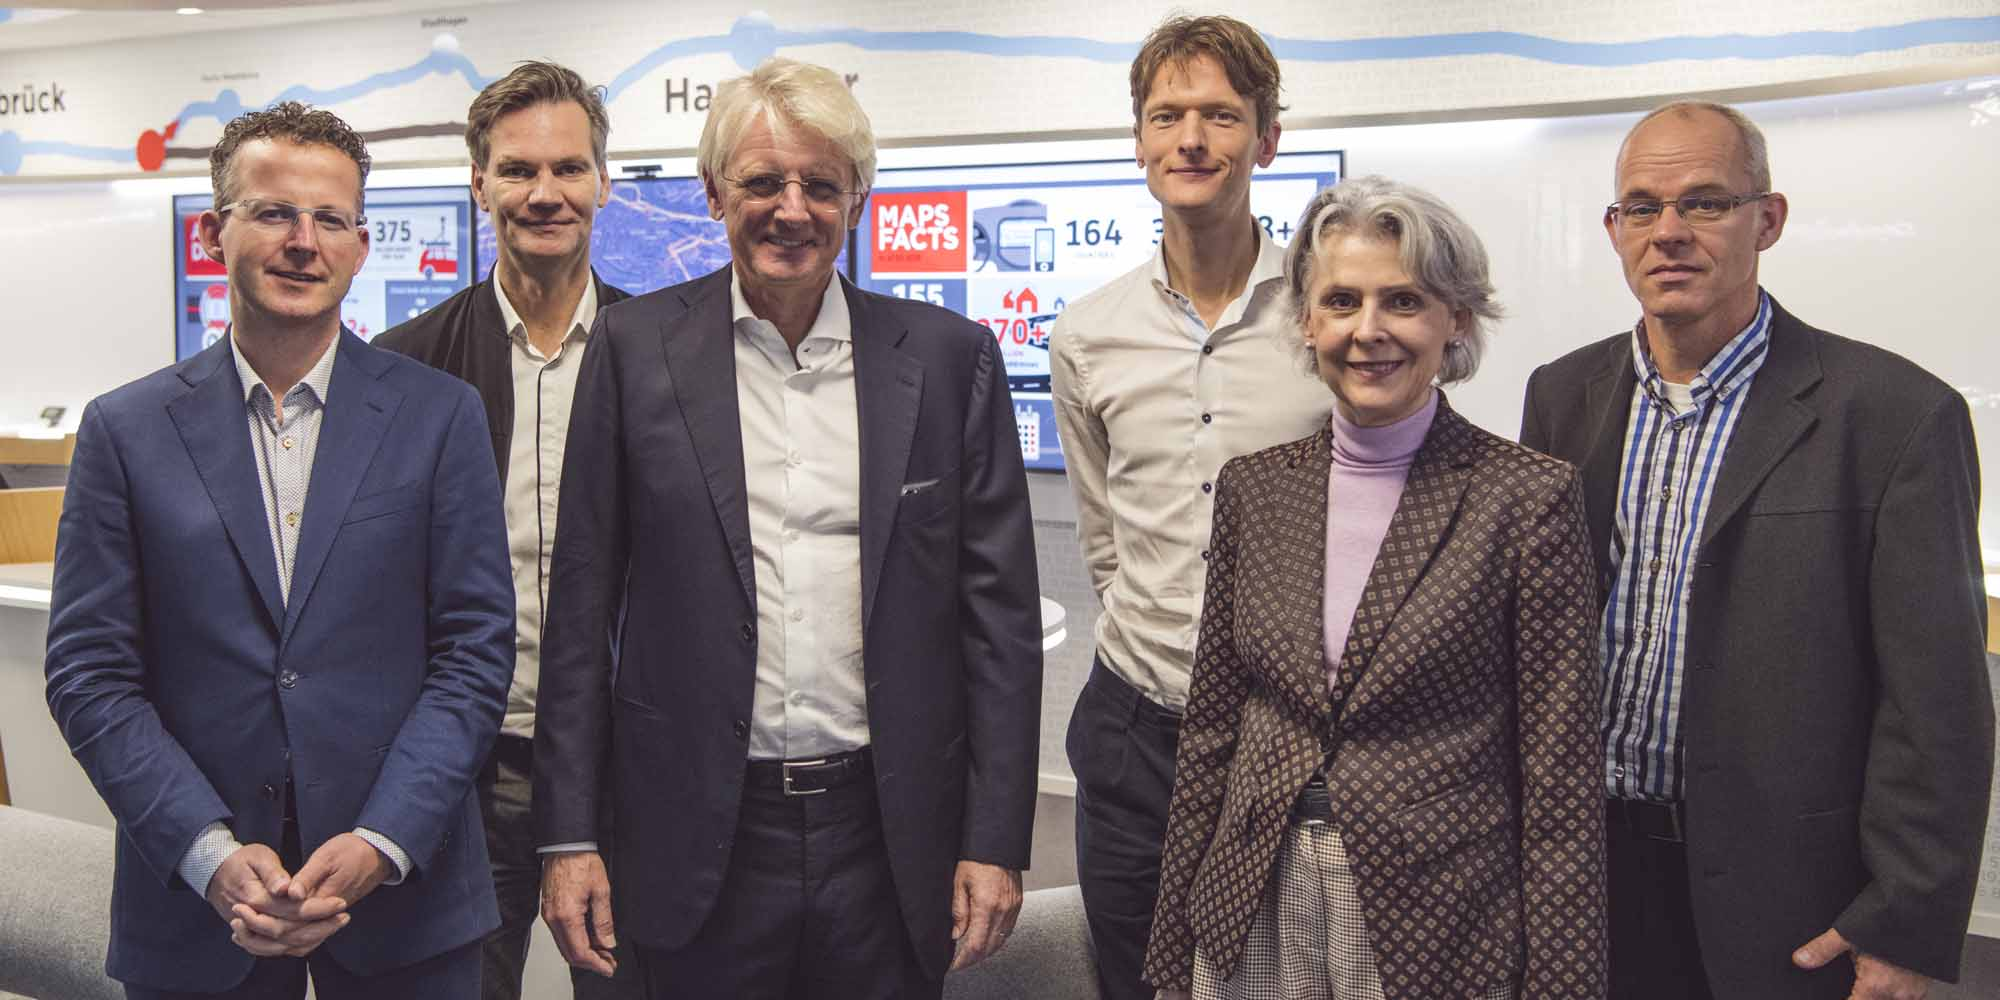 Professors Cees Snoek and Theo Gevers, CEO of TomTom Harrold Goddijn, Willem Strijbosch of TomTom, rector magnificus Karen Maex and director of the Informatics Institute Marcel Worring.